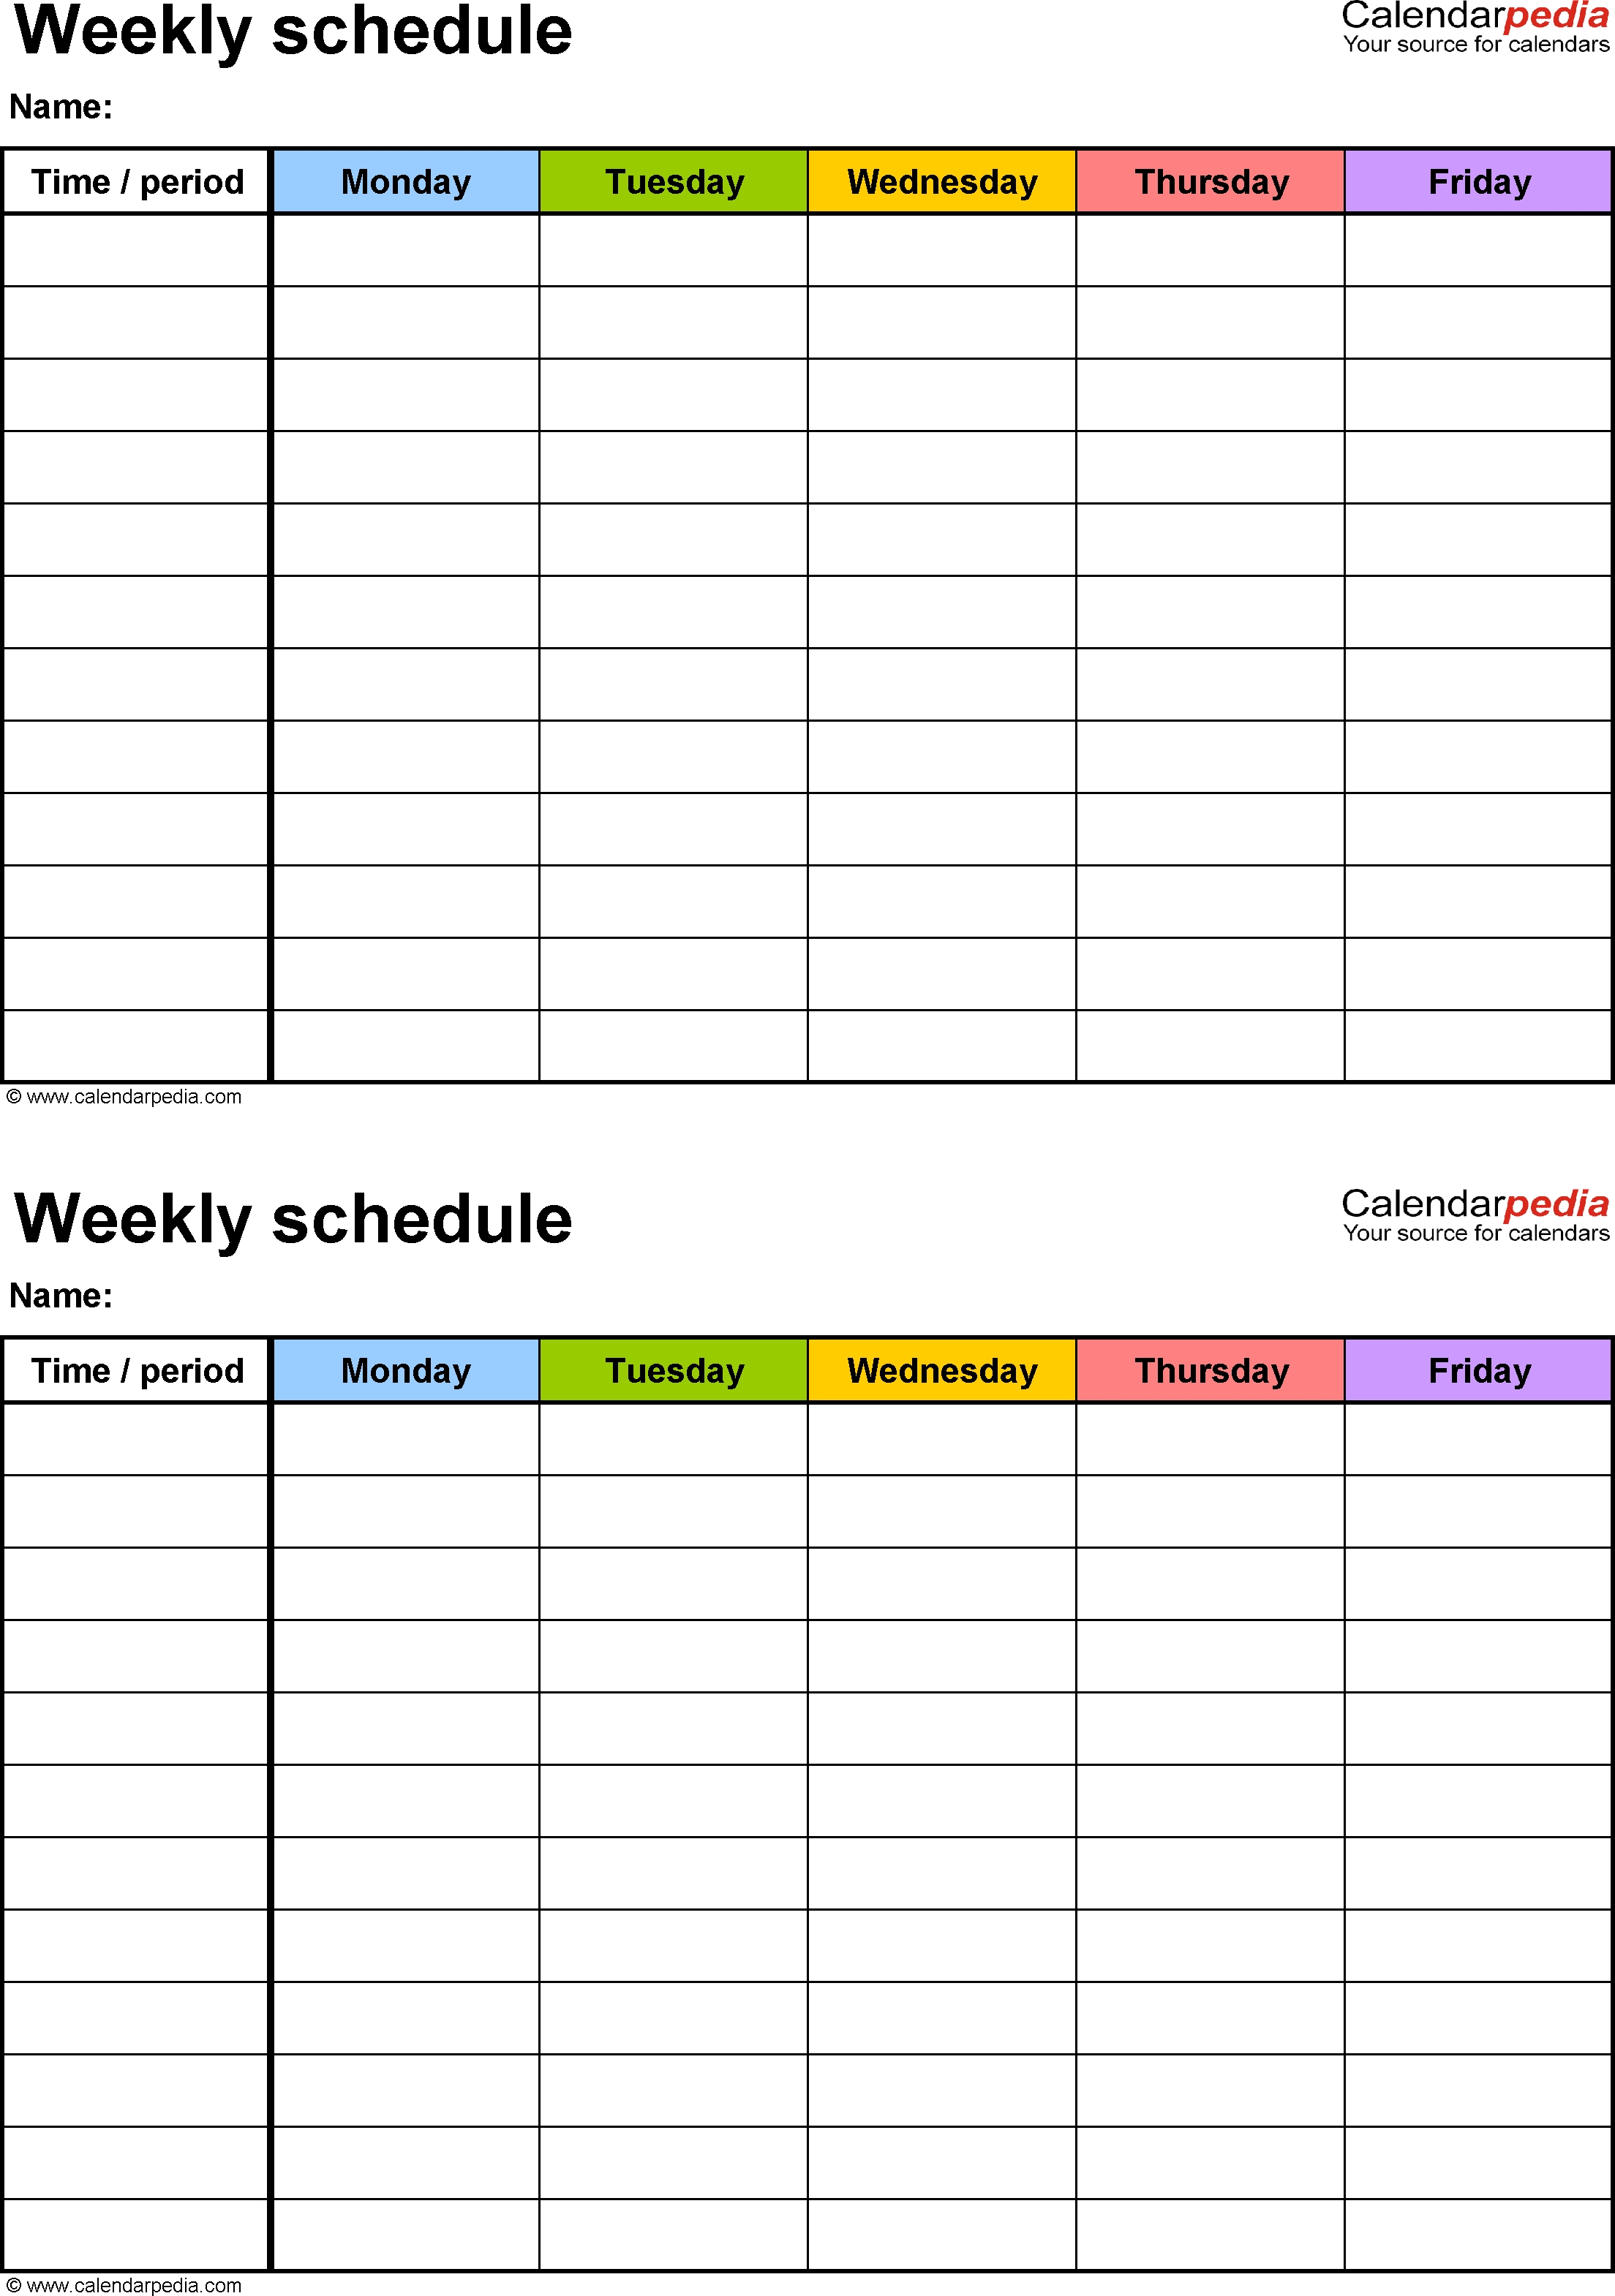 Free Weekly Schedule Templates For Word - 18 Templates with Summer Camp Schedule Template Blank